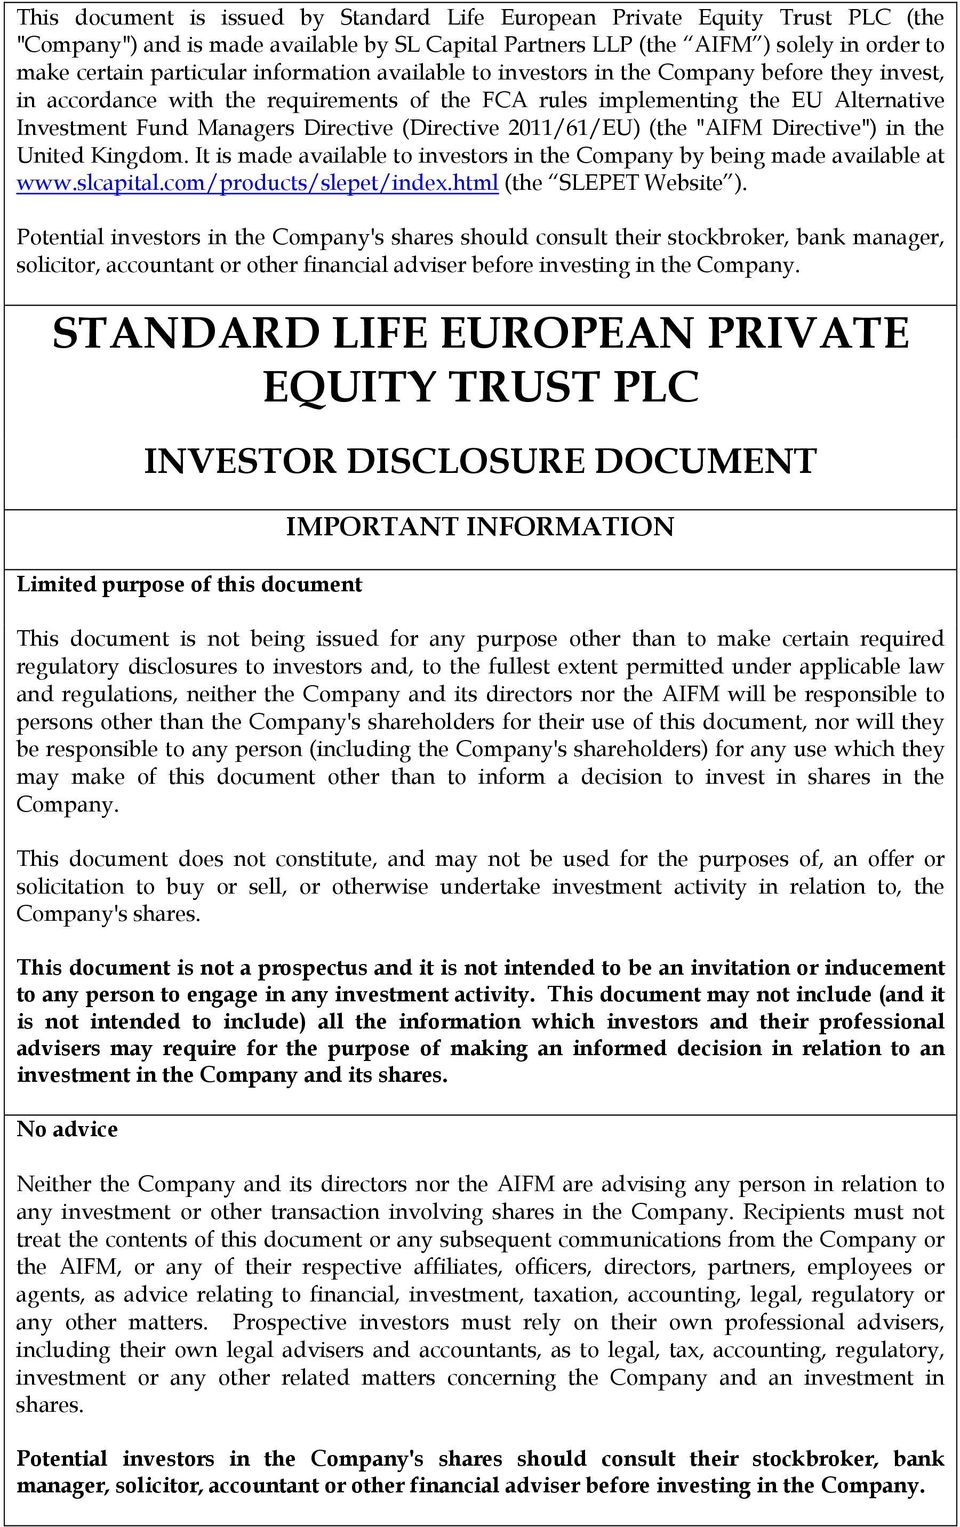 "(Directive 2011/61/EU) (the ""AIFM Directive"") in the United Kingdom. It is made available to investors in the Company by being made available at www.slcapital.com/products/slepet/index."